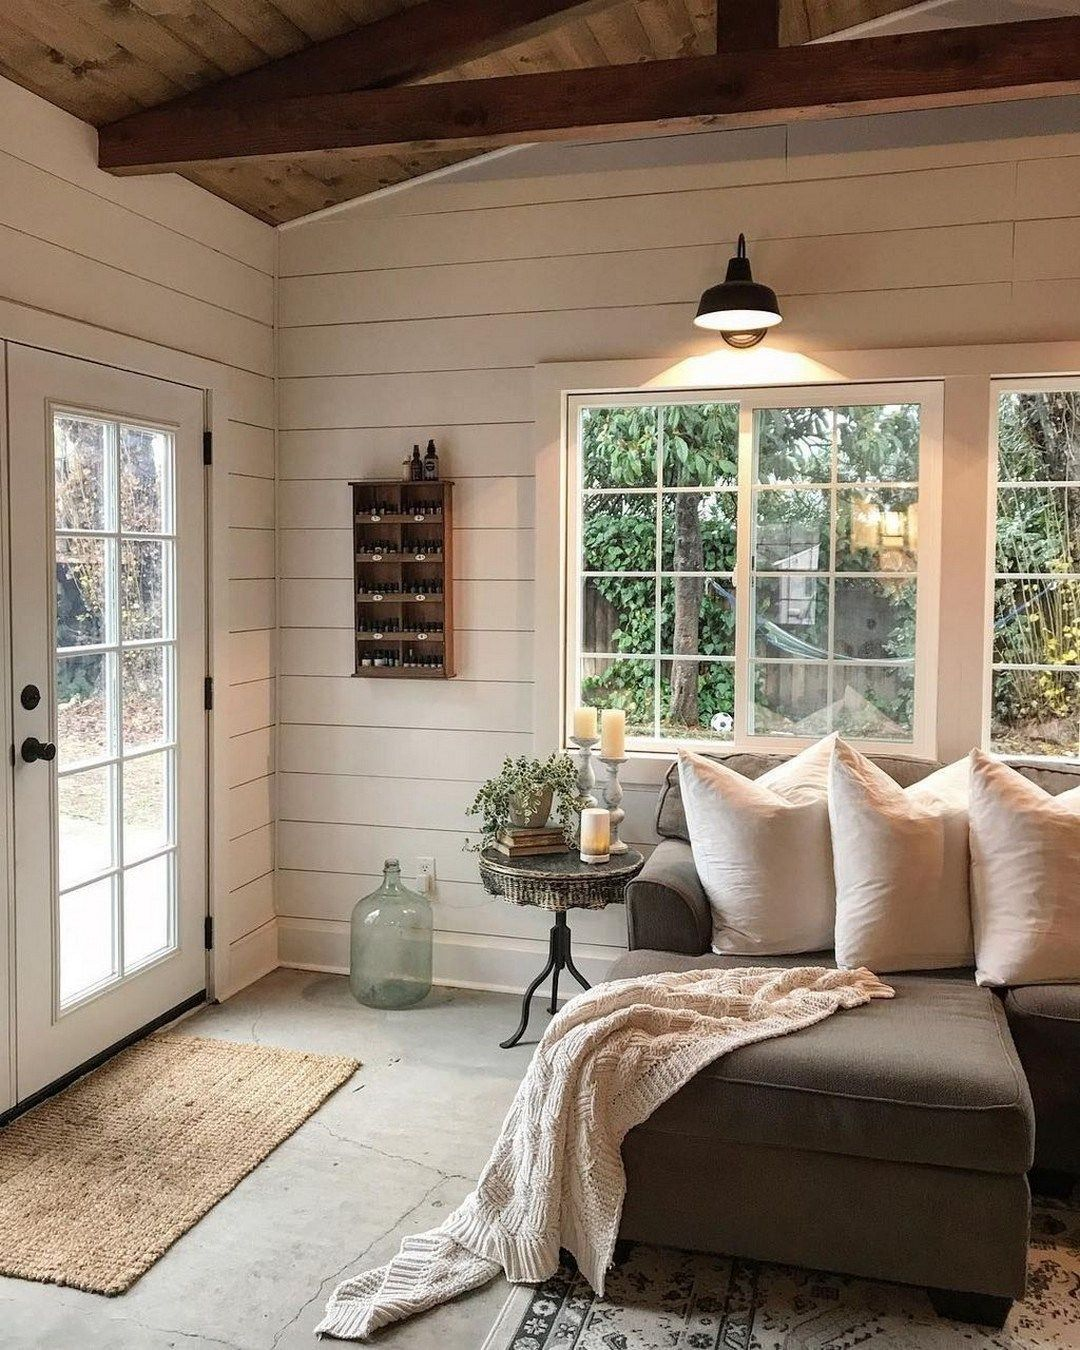 10 Modern Farmhouse Living Room Ideas: Cozy Modern Farmhouse Sunroom Design Ideas (6